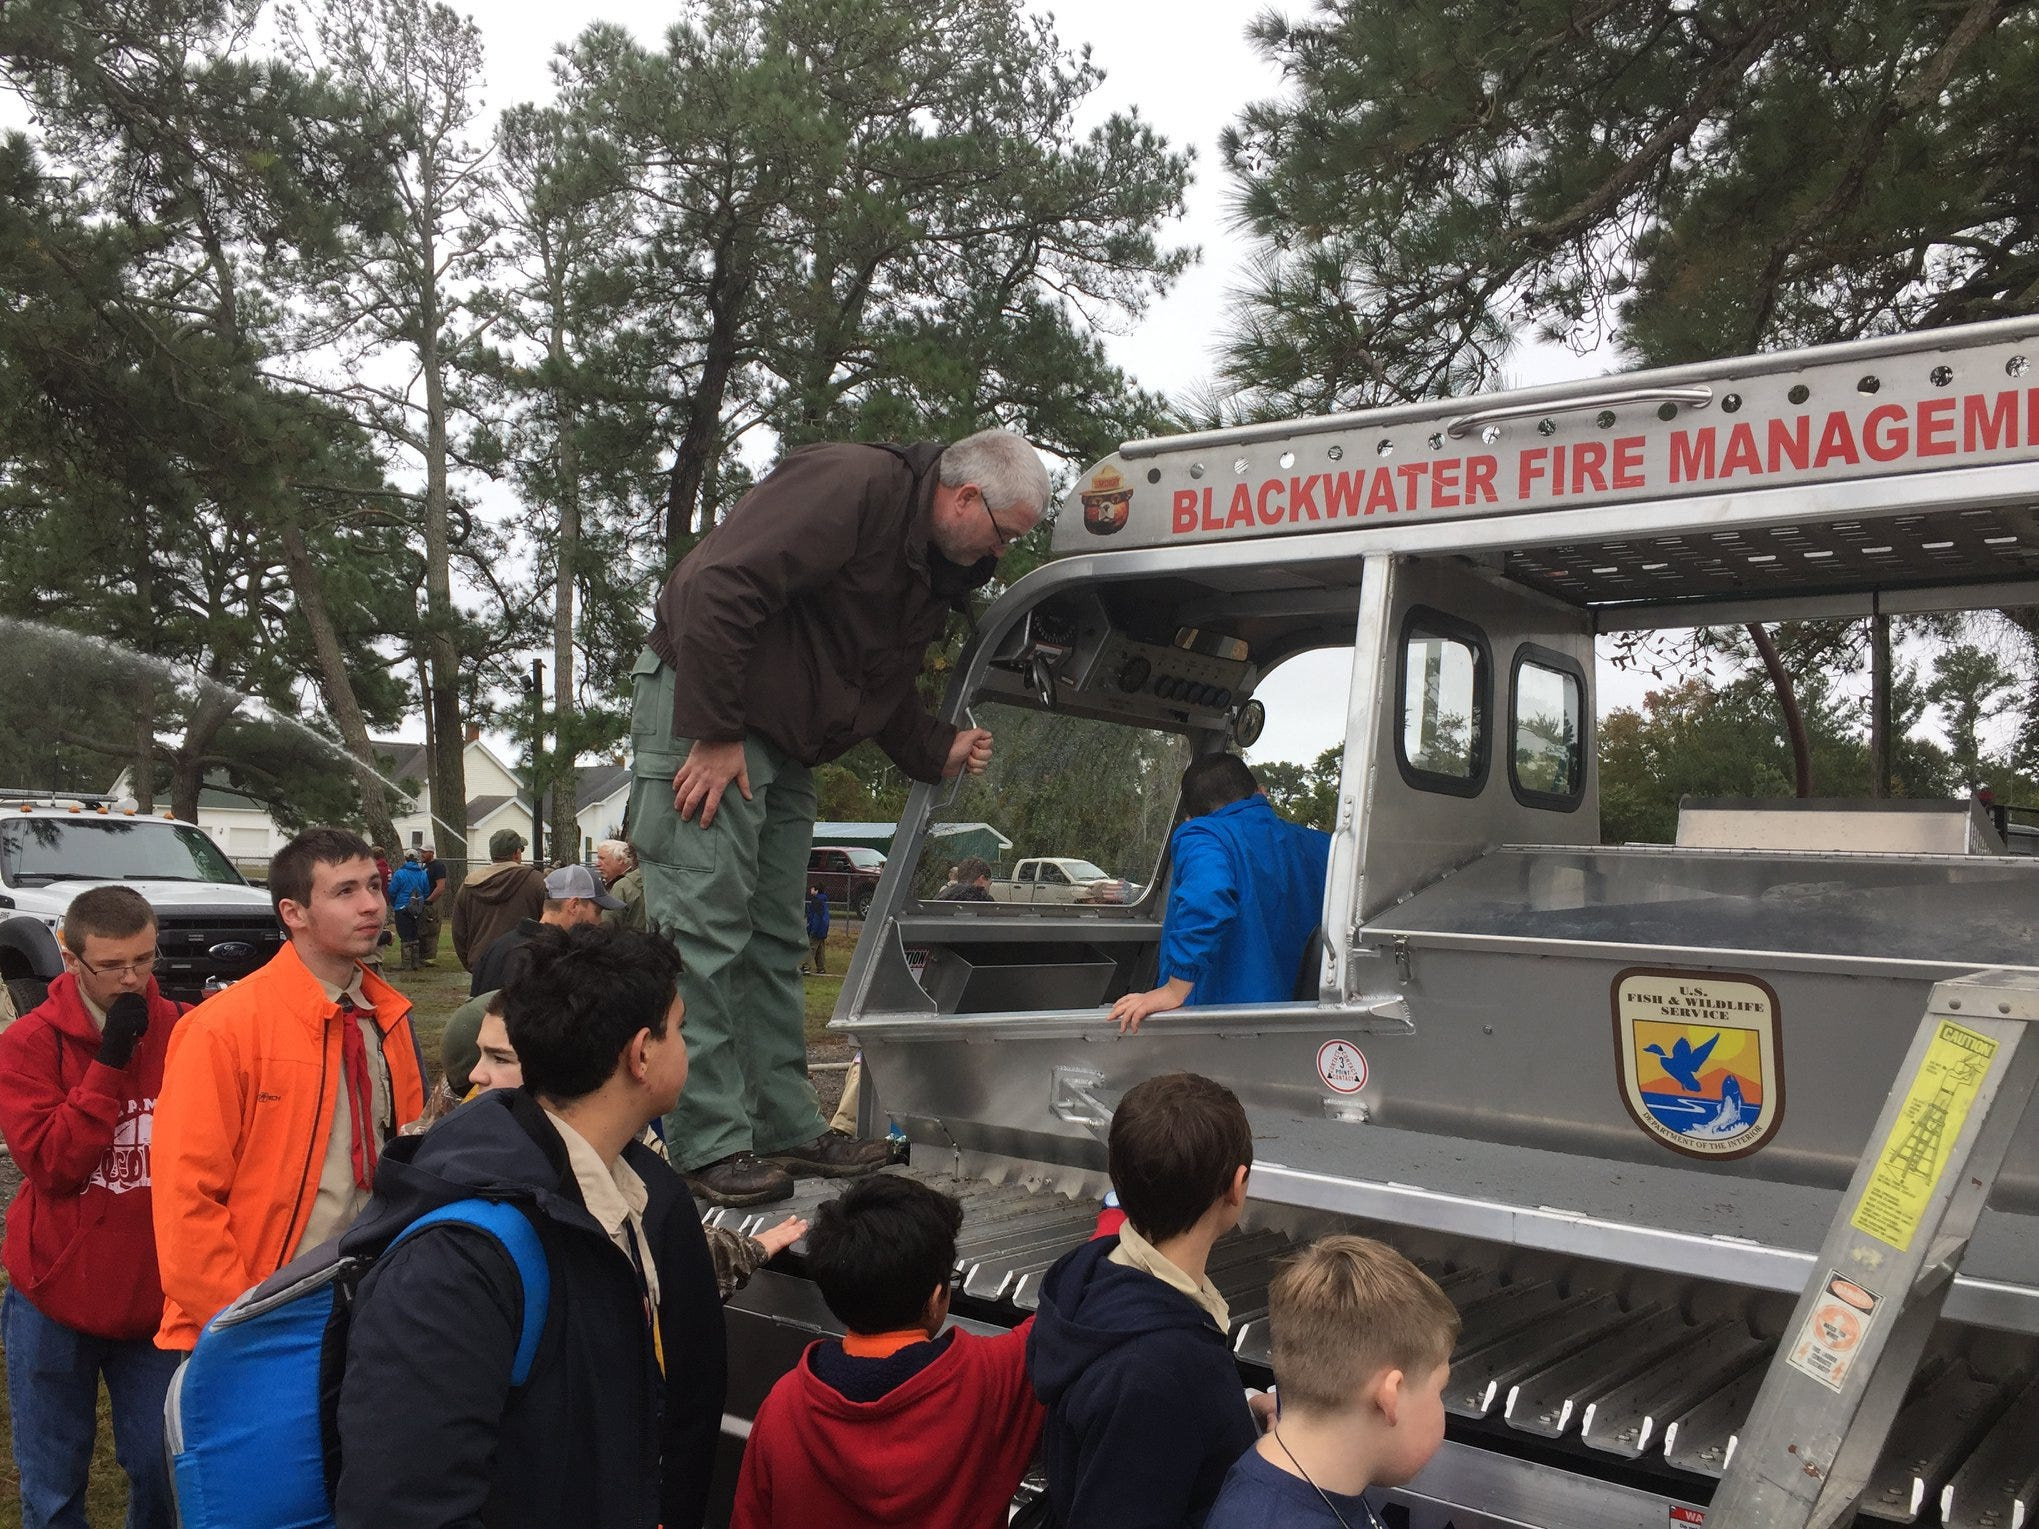 Representatives from the Blackwater National Wildlife Refuge in Maryland demonstrate their fire management vehicle at the Scouts Camporee in Chincoteague.